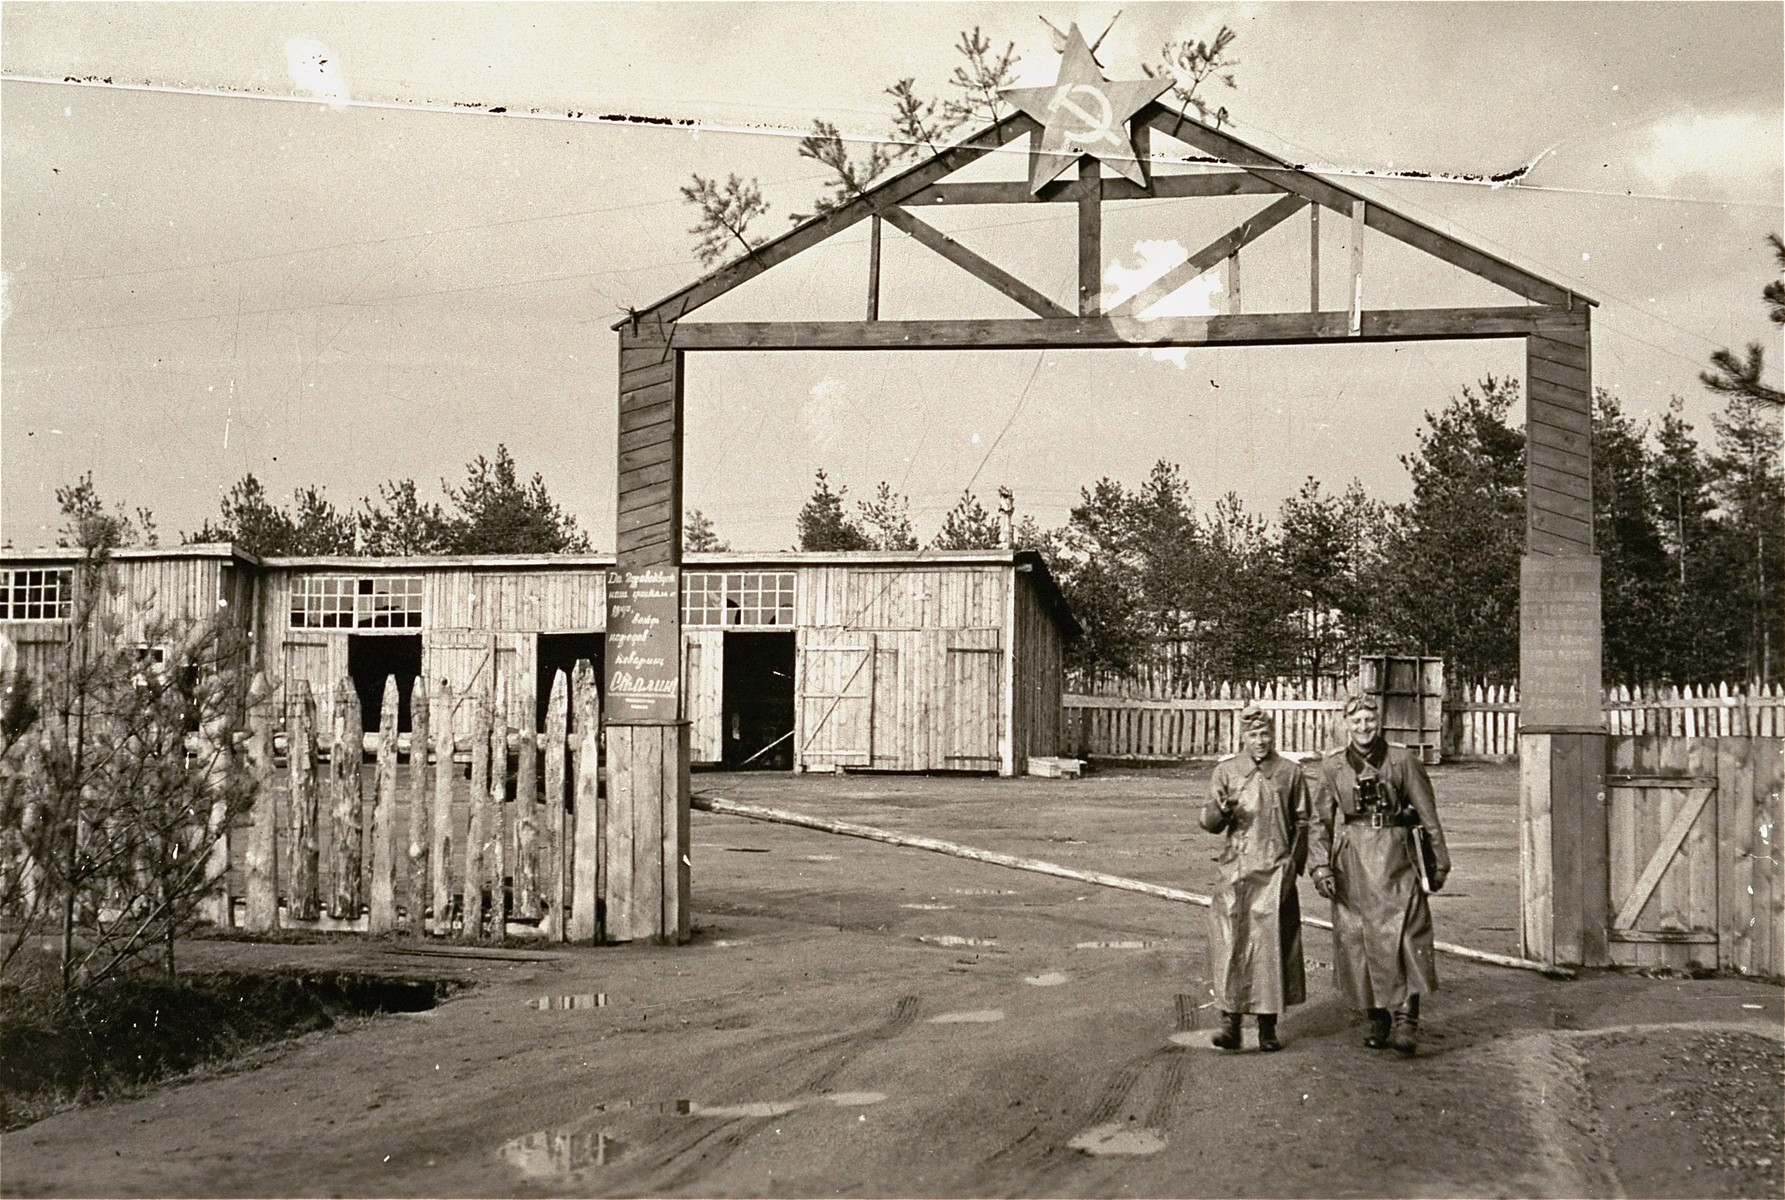 Two German soldiers stand outside of the gate of an abandoned Soviet camp.